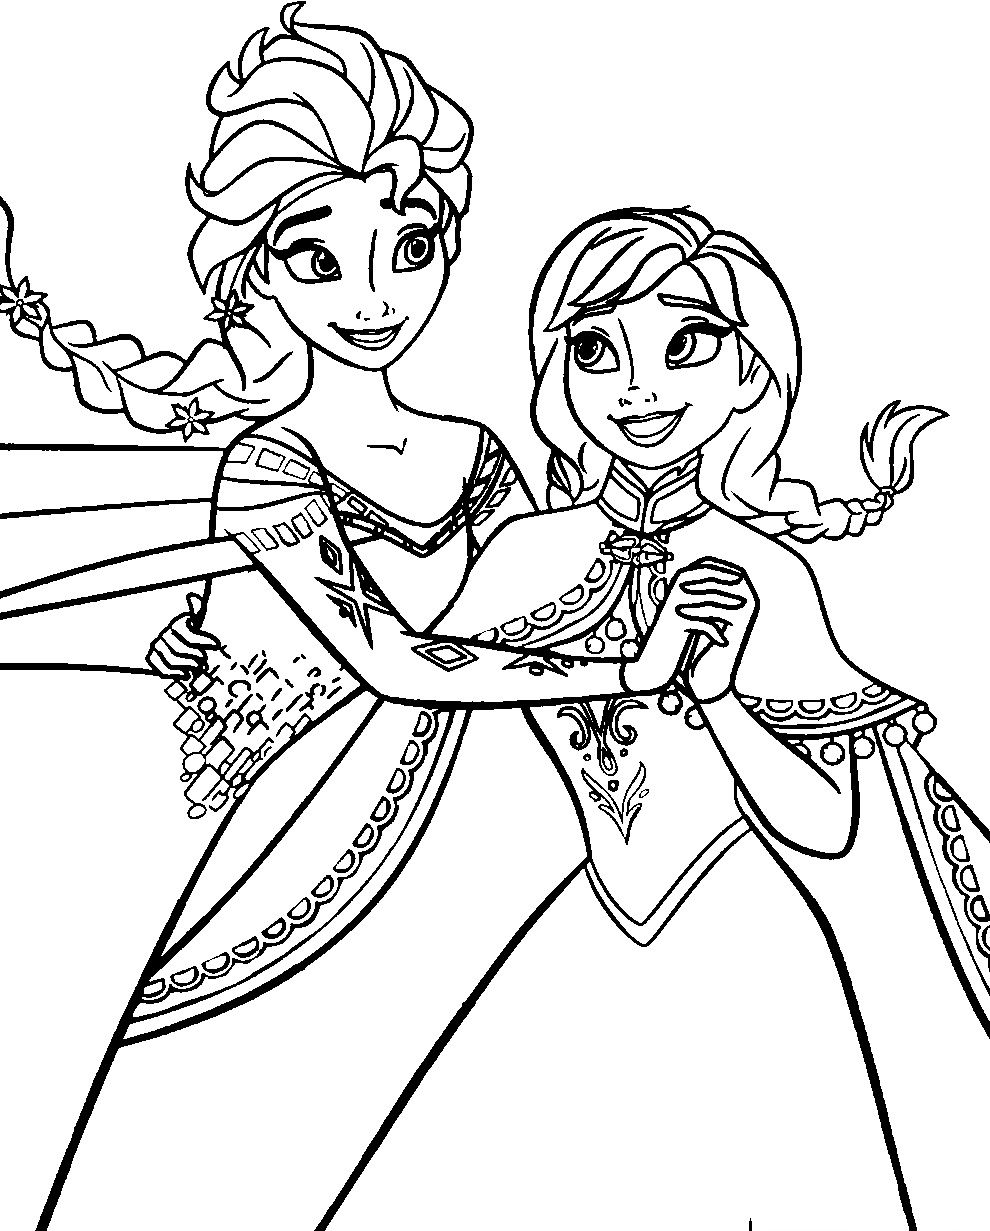 Disney Frozen Coloring Pages To Download Elsa Coloring Pages Disney Princess Coloring Pages Cartoon Coloring Pages